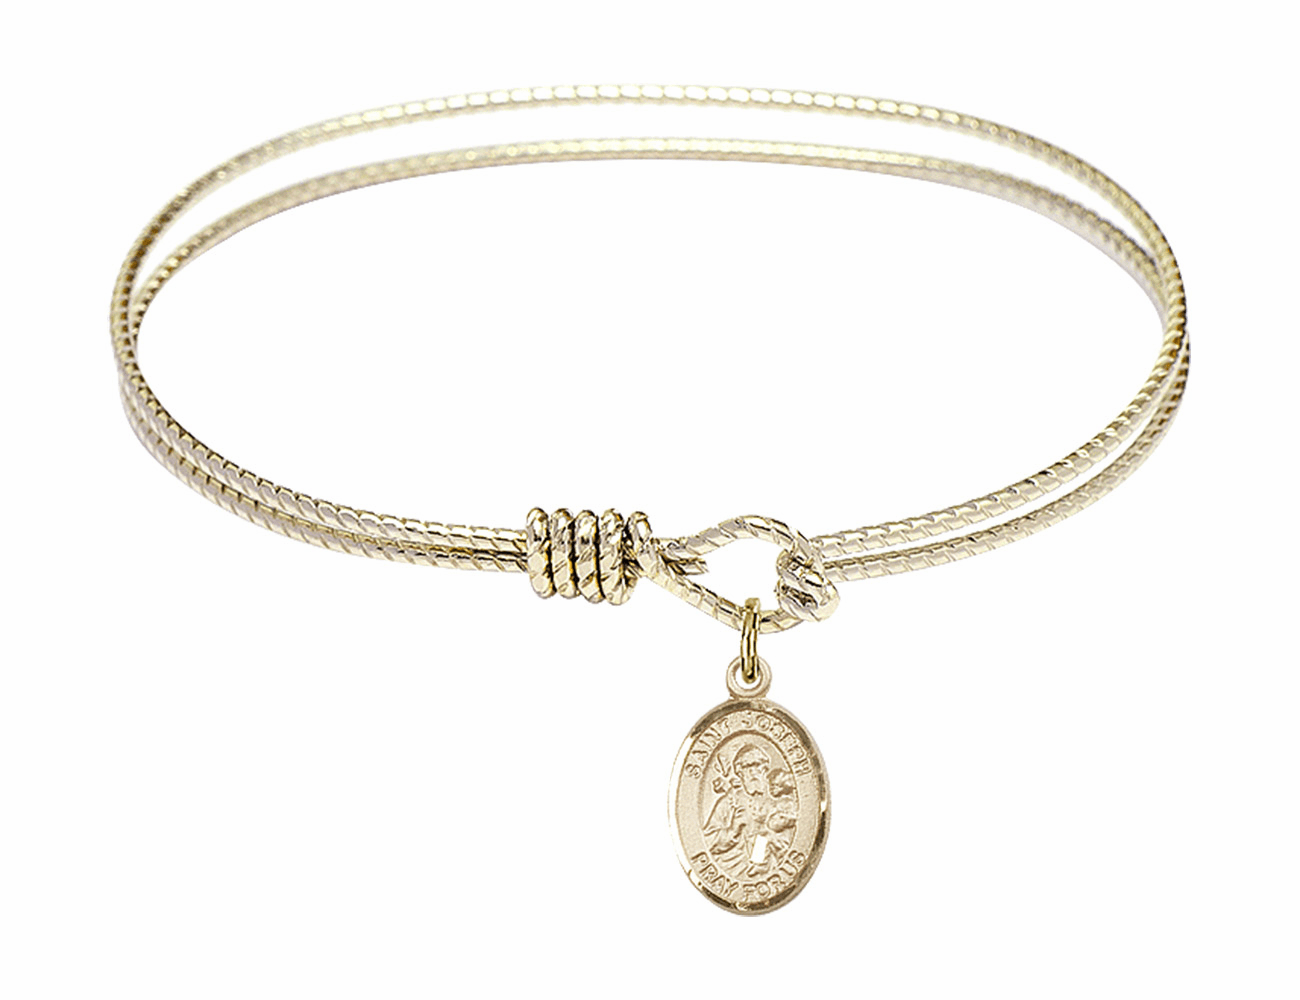 Twisted St Joseph Bangle 14kt Gold-filled Charm Bracelet by Bliss